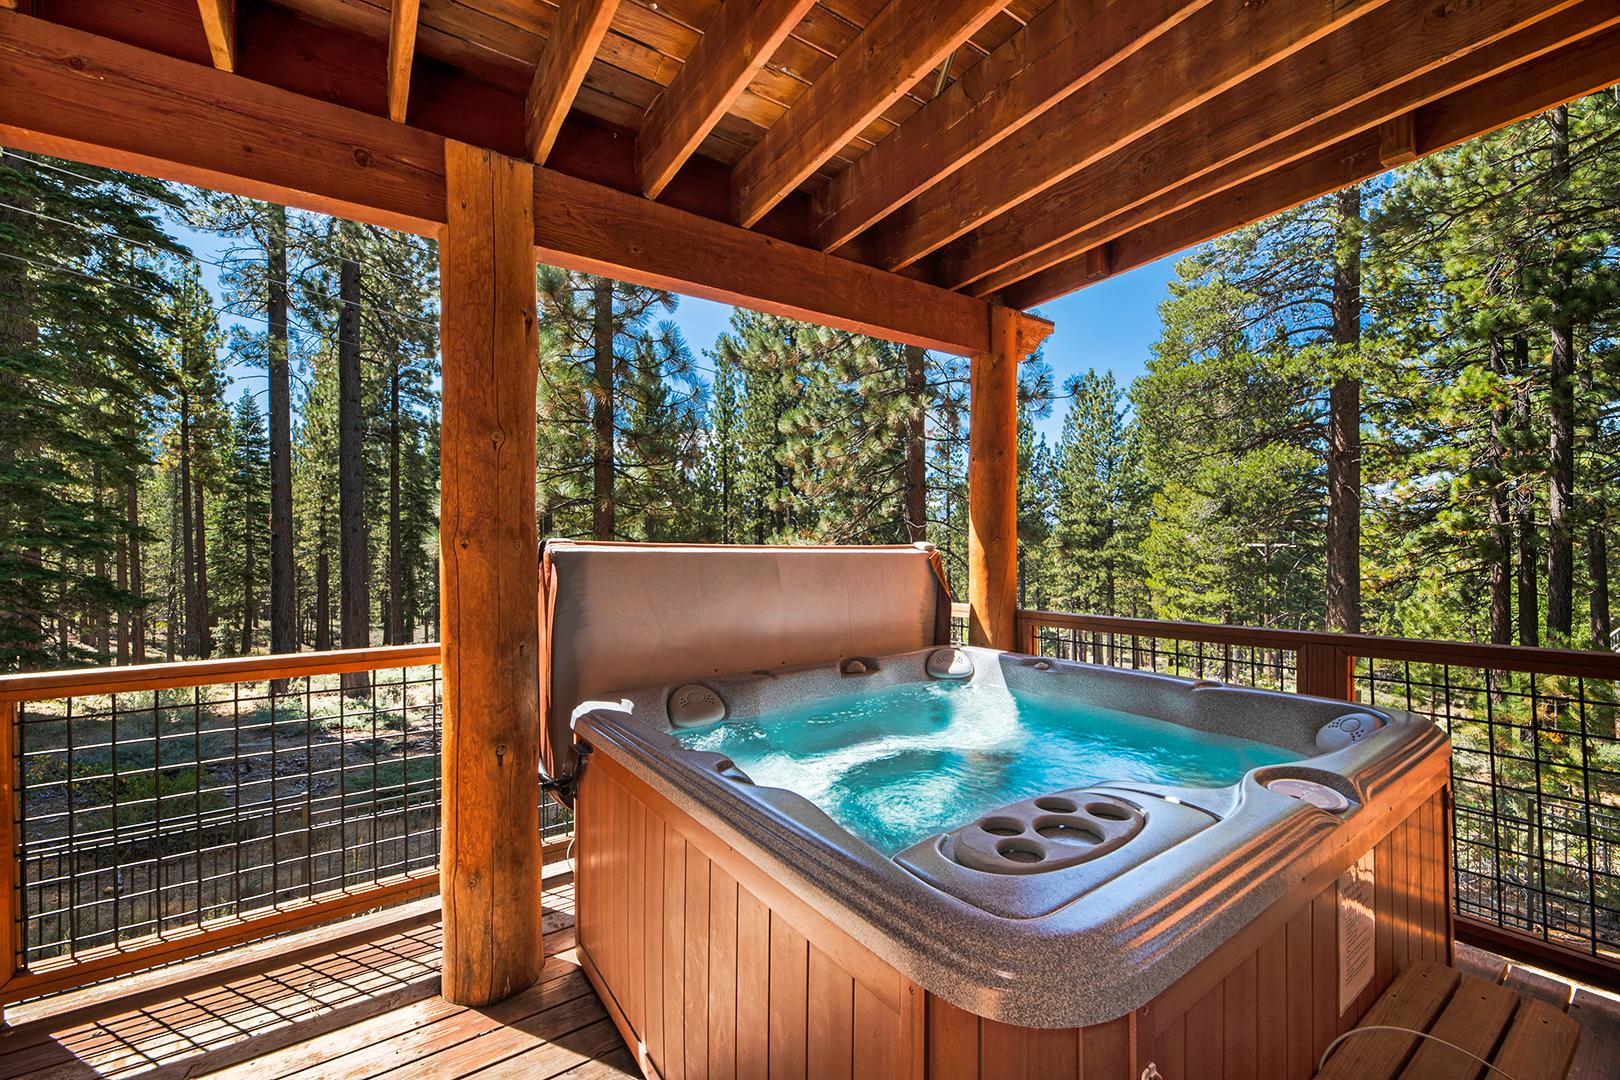 Enjoy wooded views while soaking in the private hot tub.